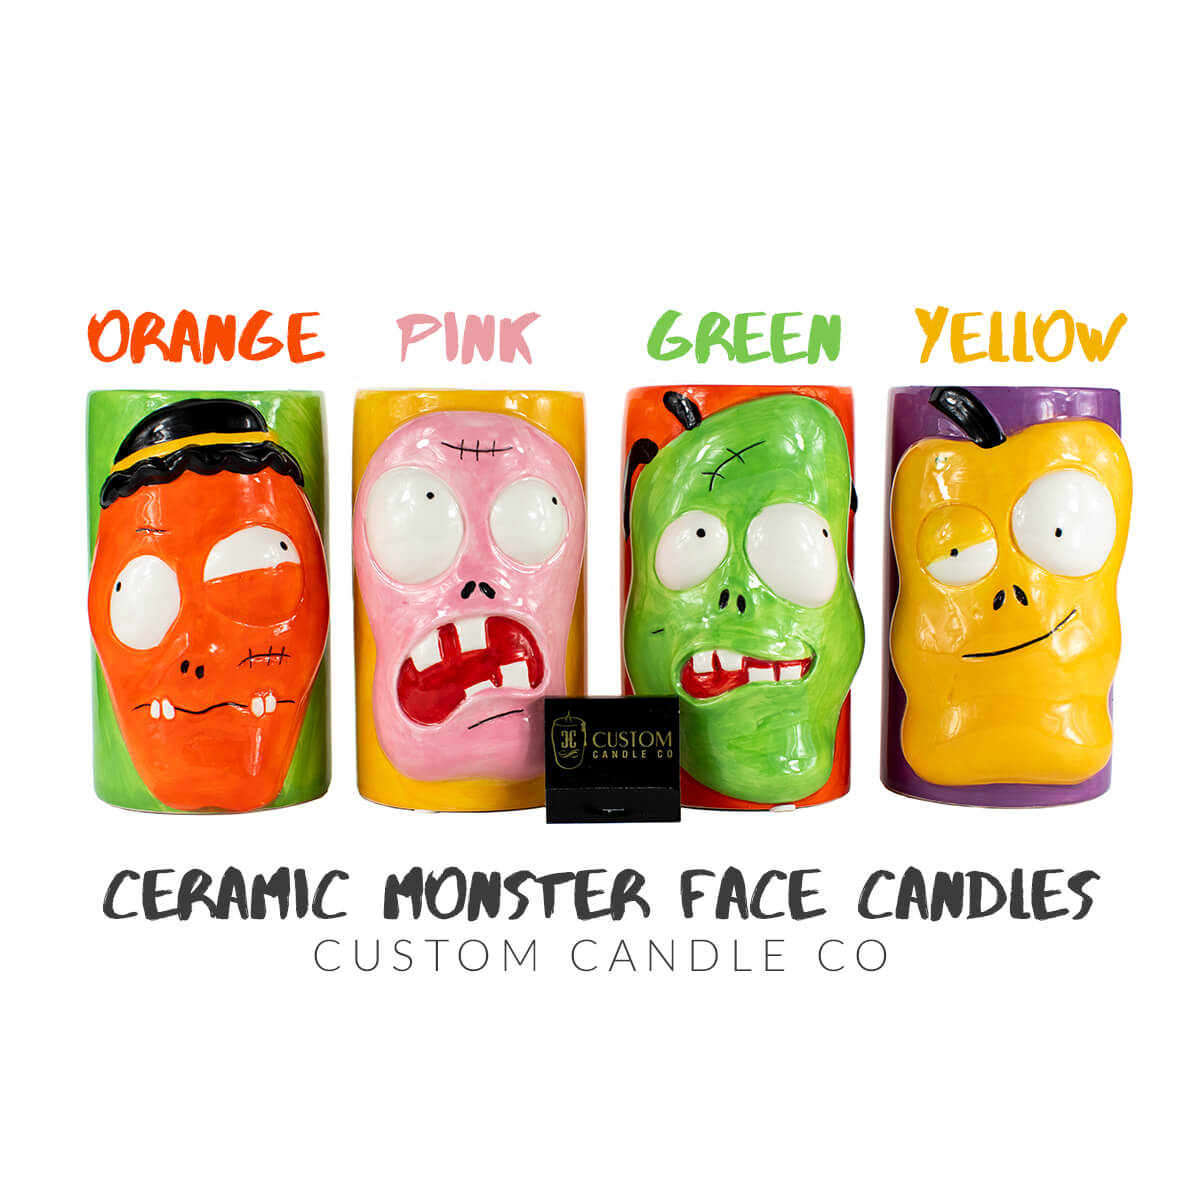 ceramic-monster-face-candles-1